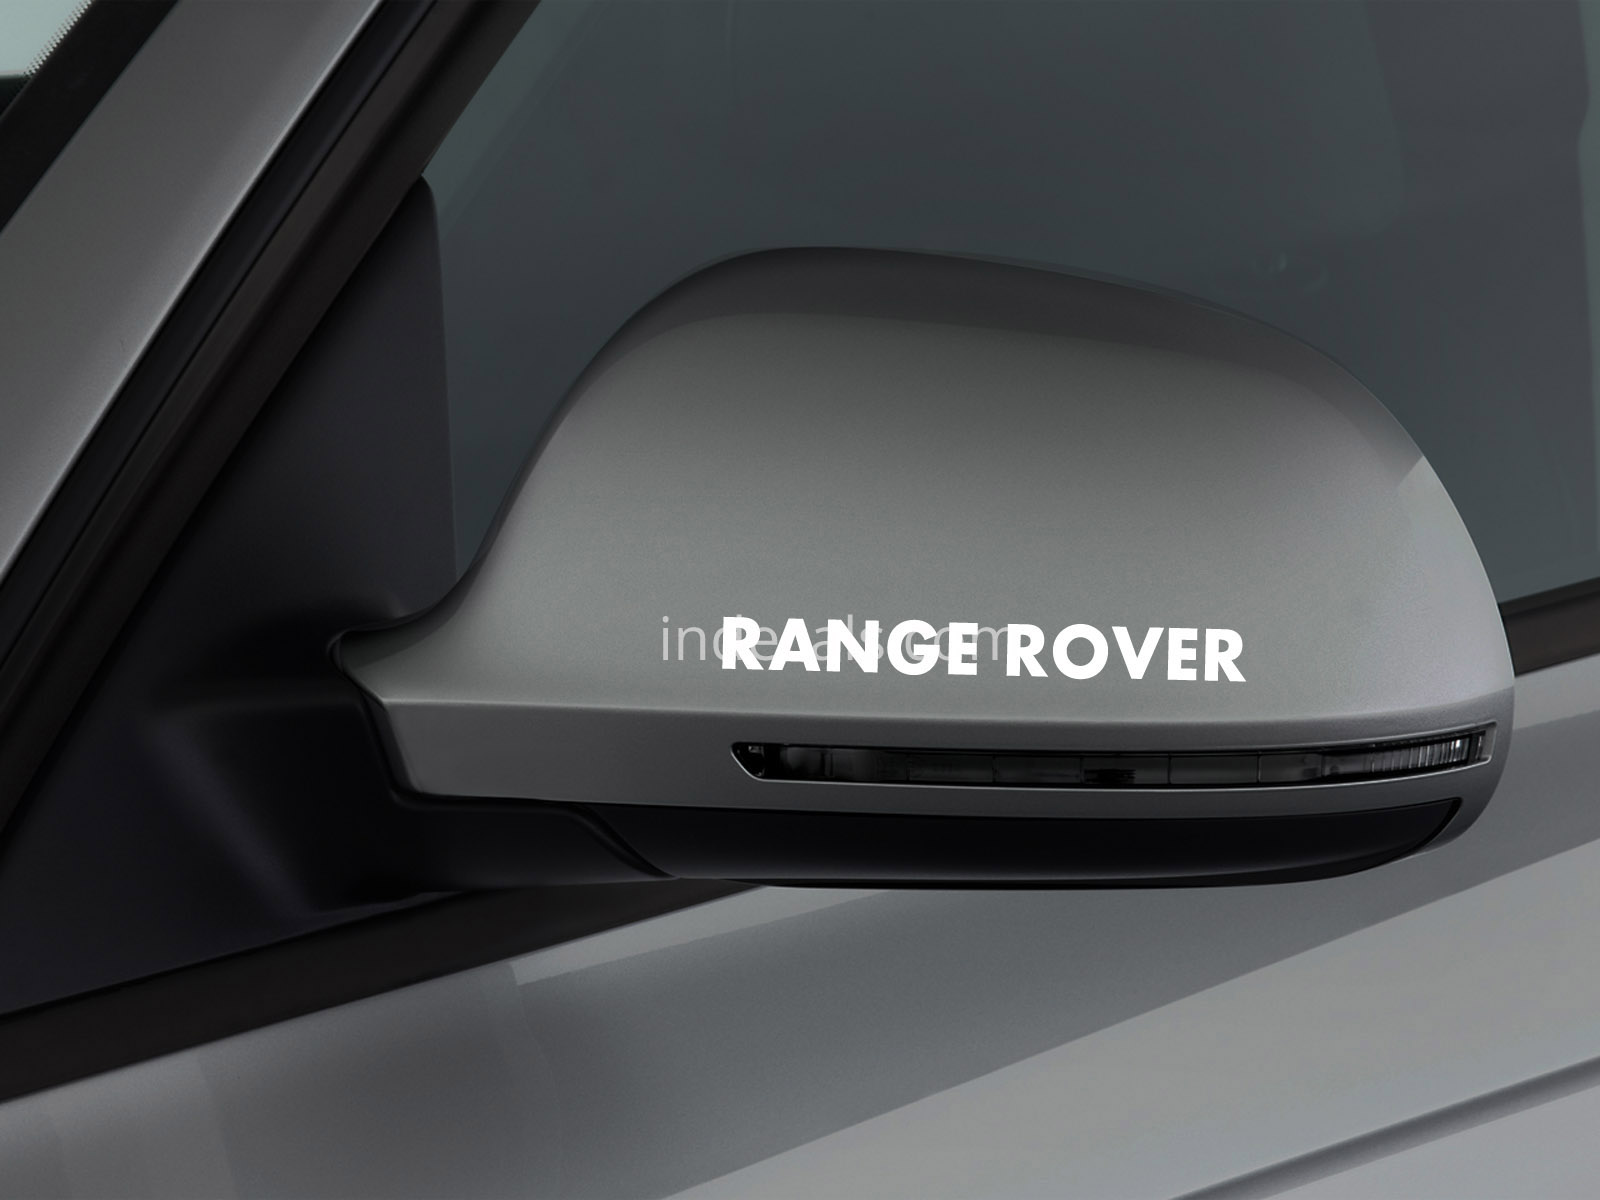 3 x Range Rover Stickers for Mirror - White